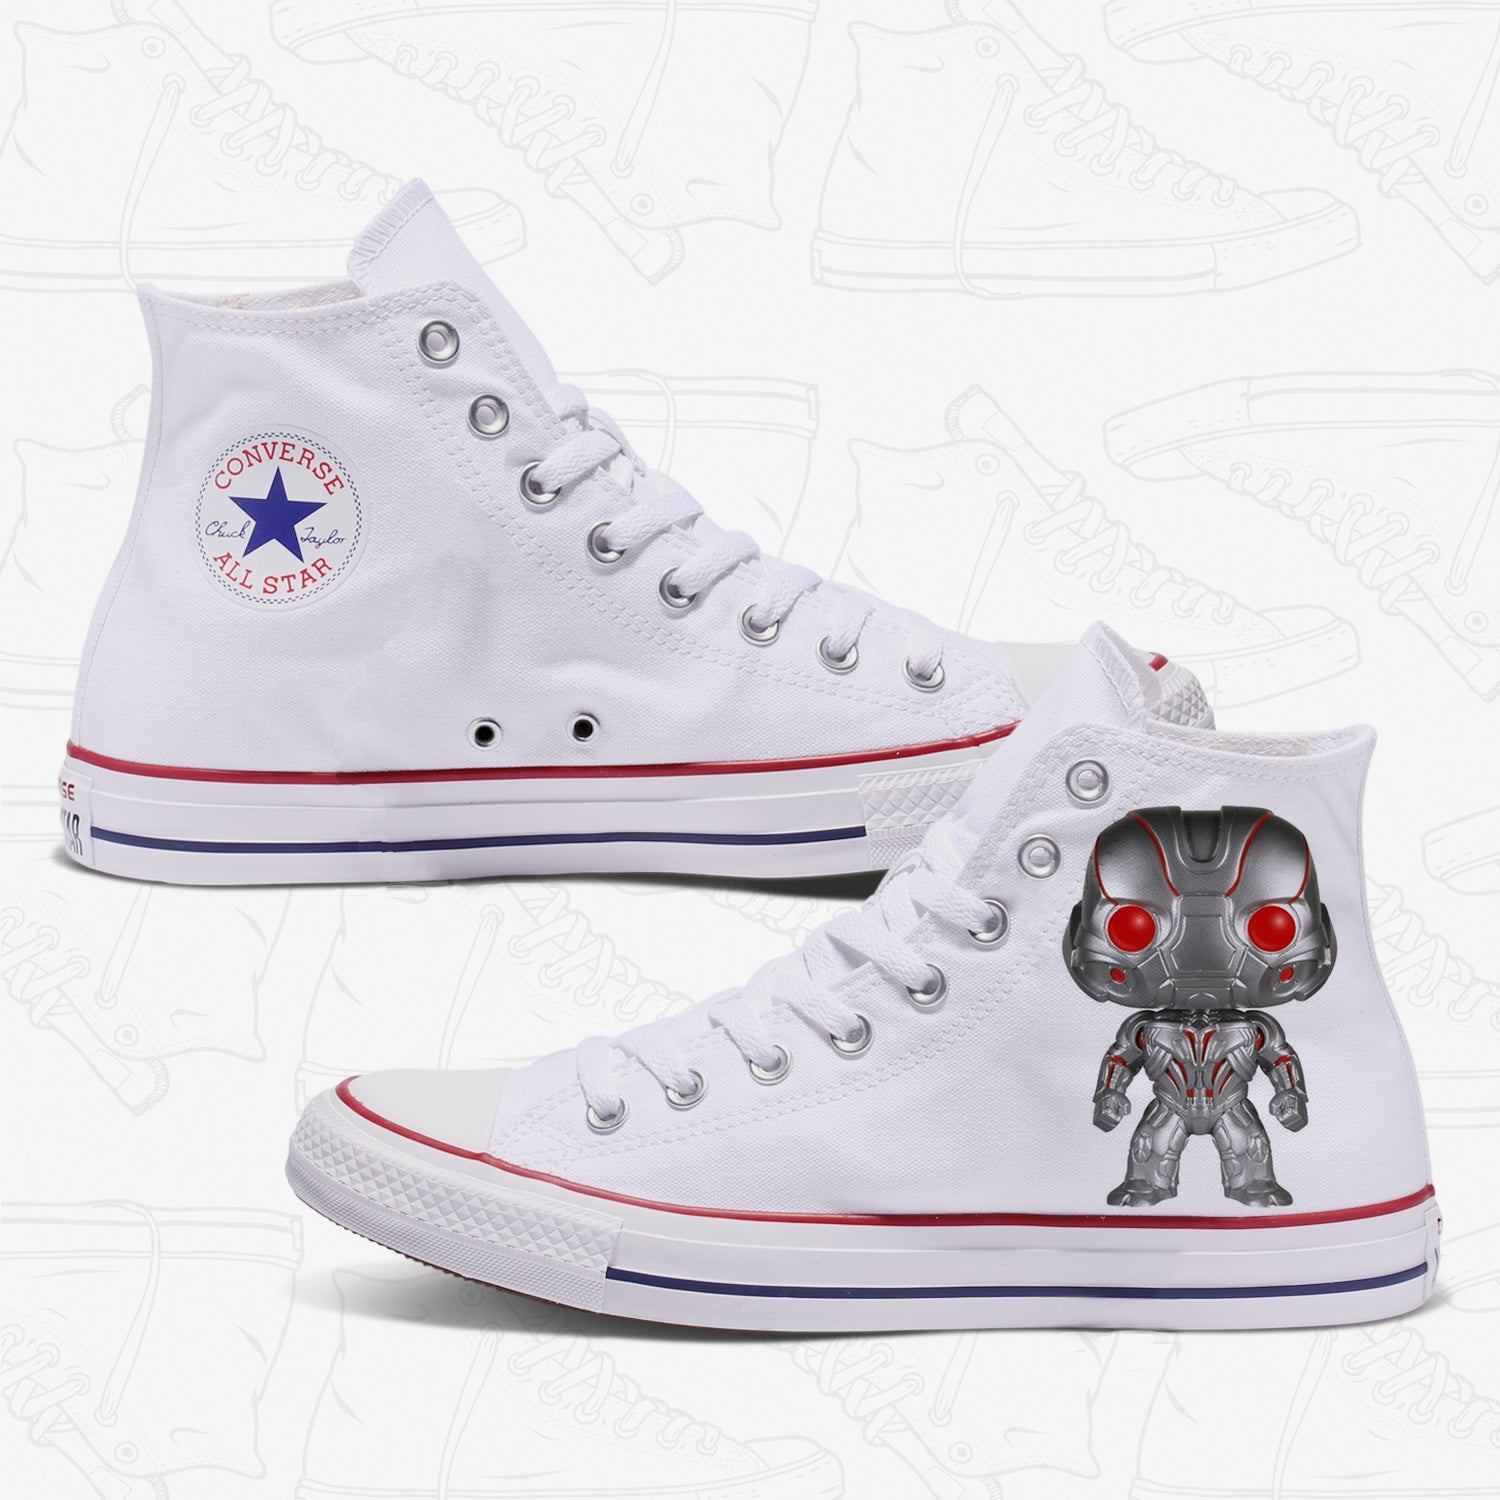 Ultron Custom Converse White